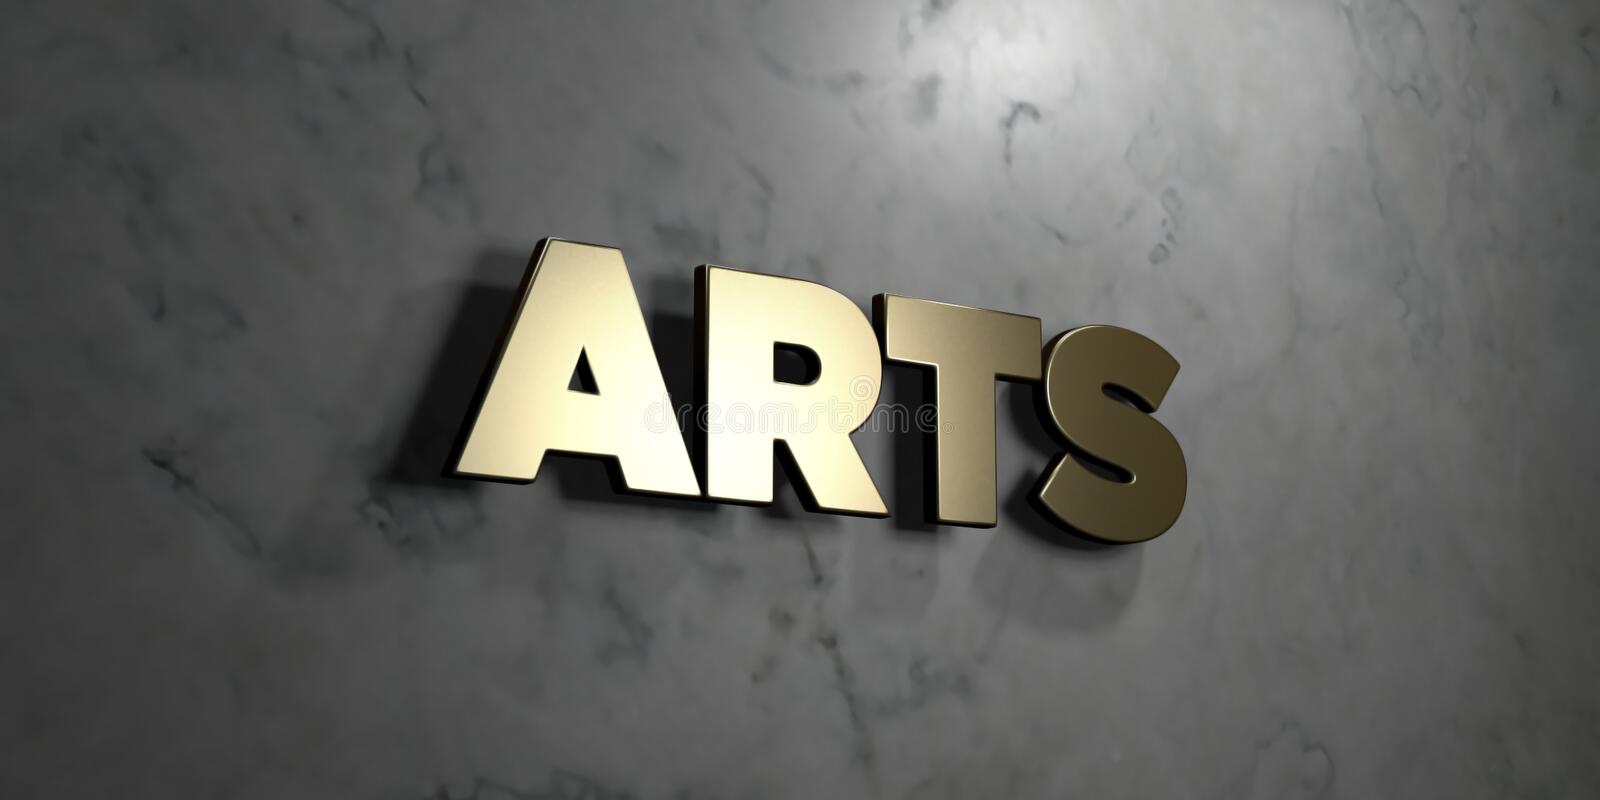 Arts - Gold sign mounted on glossy marble wall - 3D rendered royalty free stock illustration vector illustration